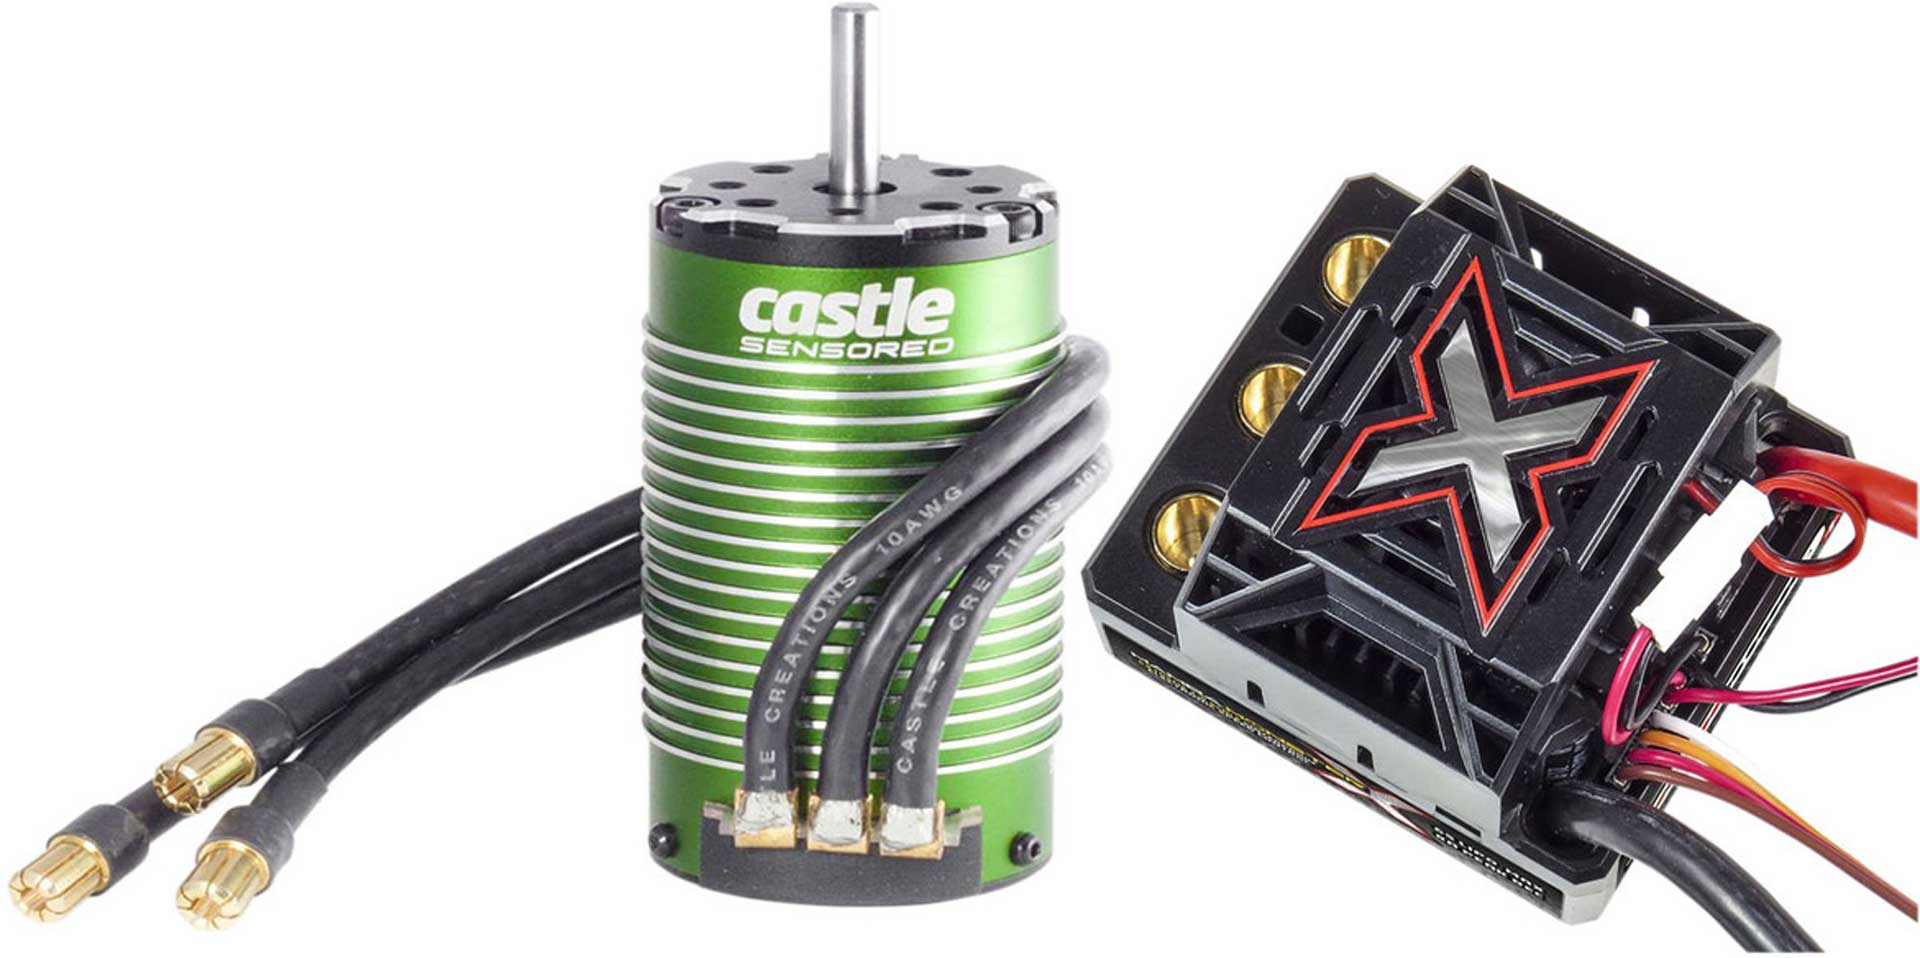 CASTLE CREATION MAMBA MONSTER X COMBO 1/8 EXTREME BRUSHLESS CAR CONTROLLER WITH 1512-1800 SENSORED MOTOR